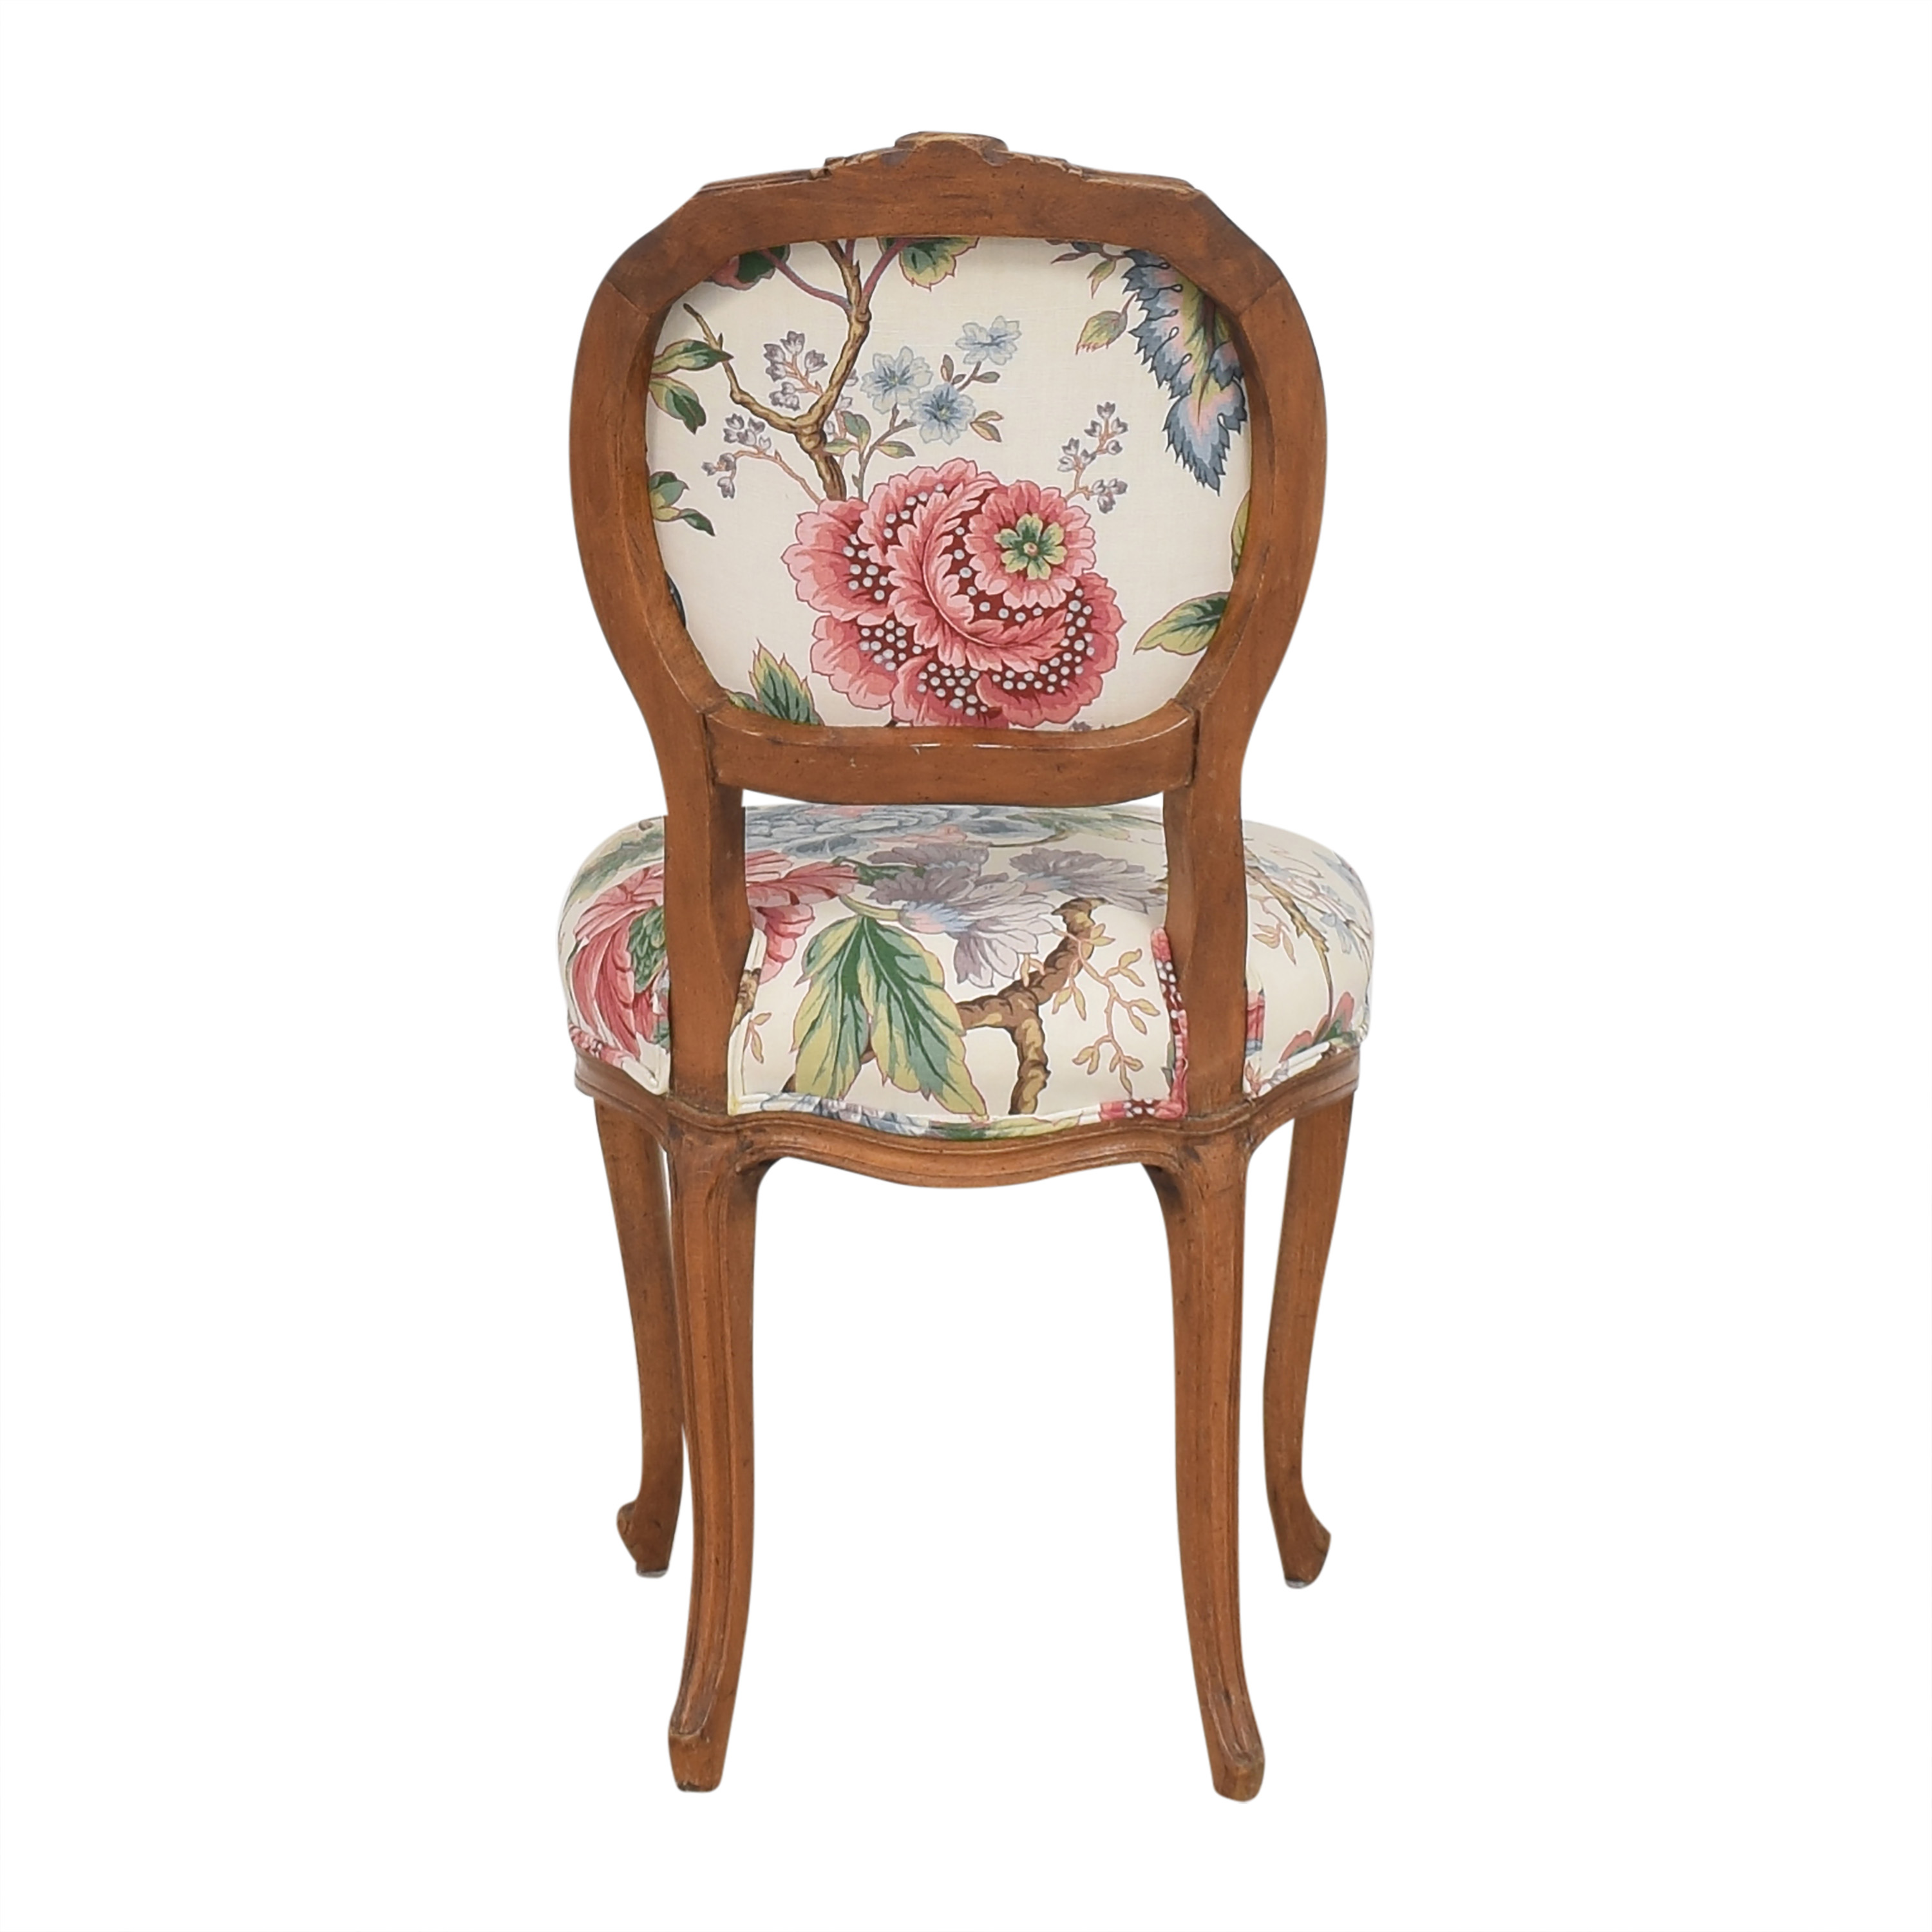 Floral Vintage-Style Upholstered Chair price